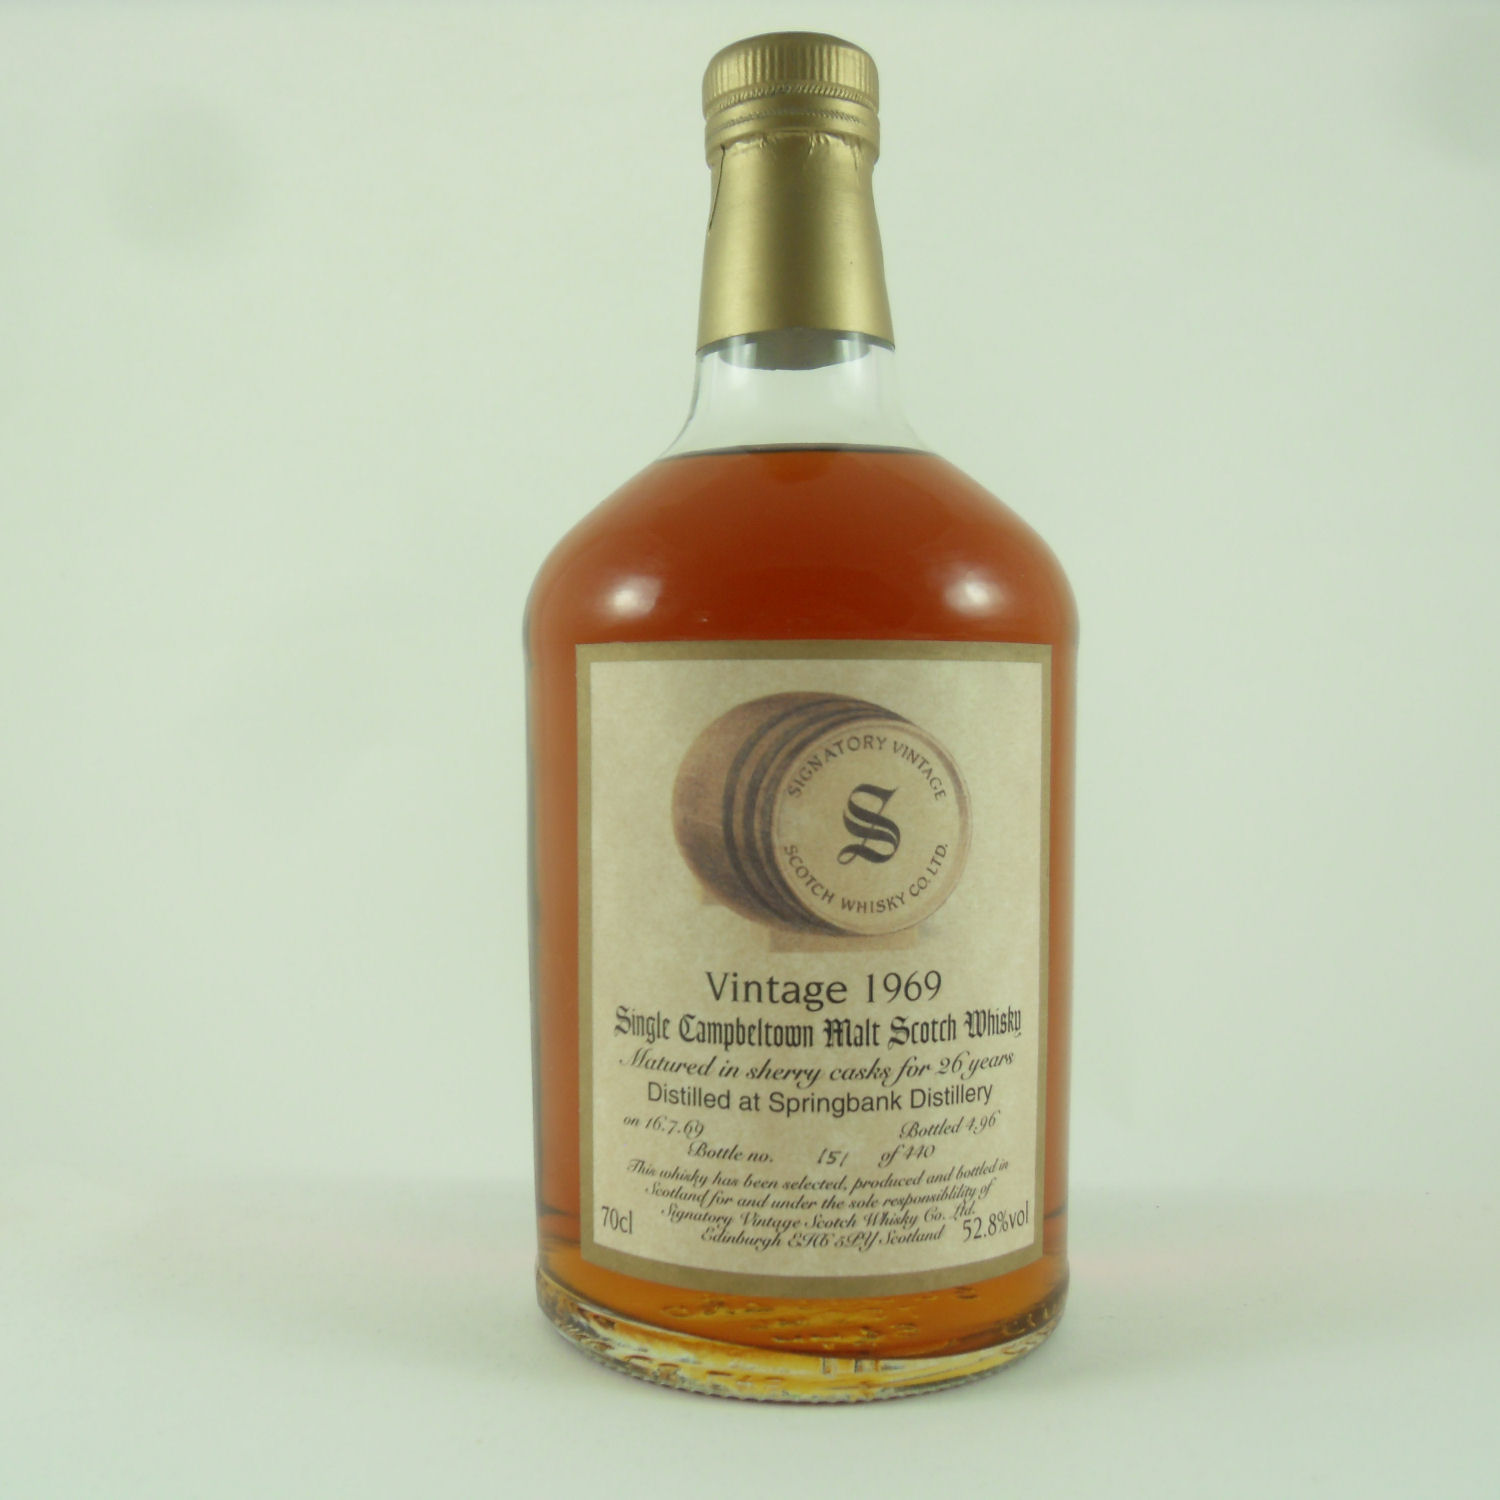 Springbank Scotch Whisky